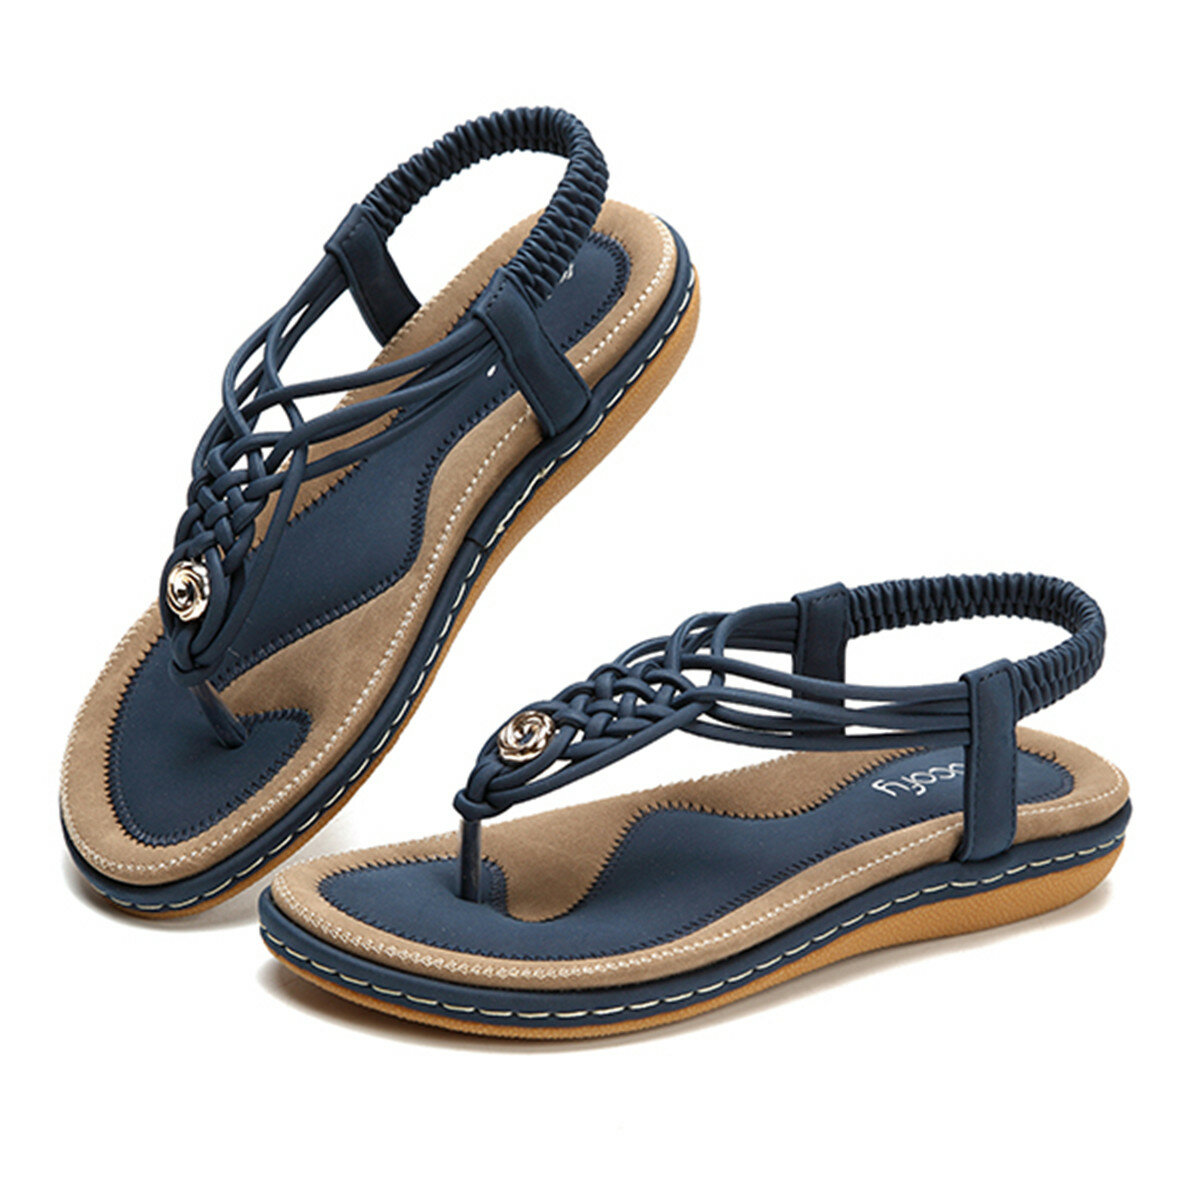 e415213d28f0 SOCOFY US Size 5-13 Women Shoes Knitted Casual Soft Sole Outdoor Beach  Sandals COD